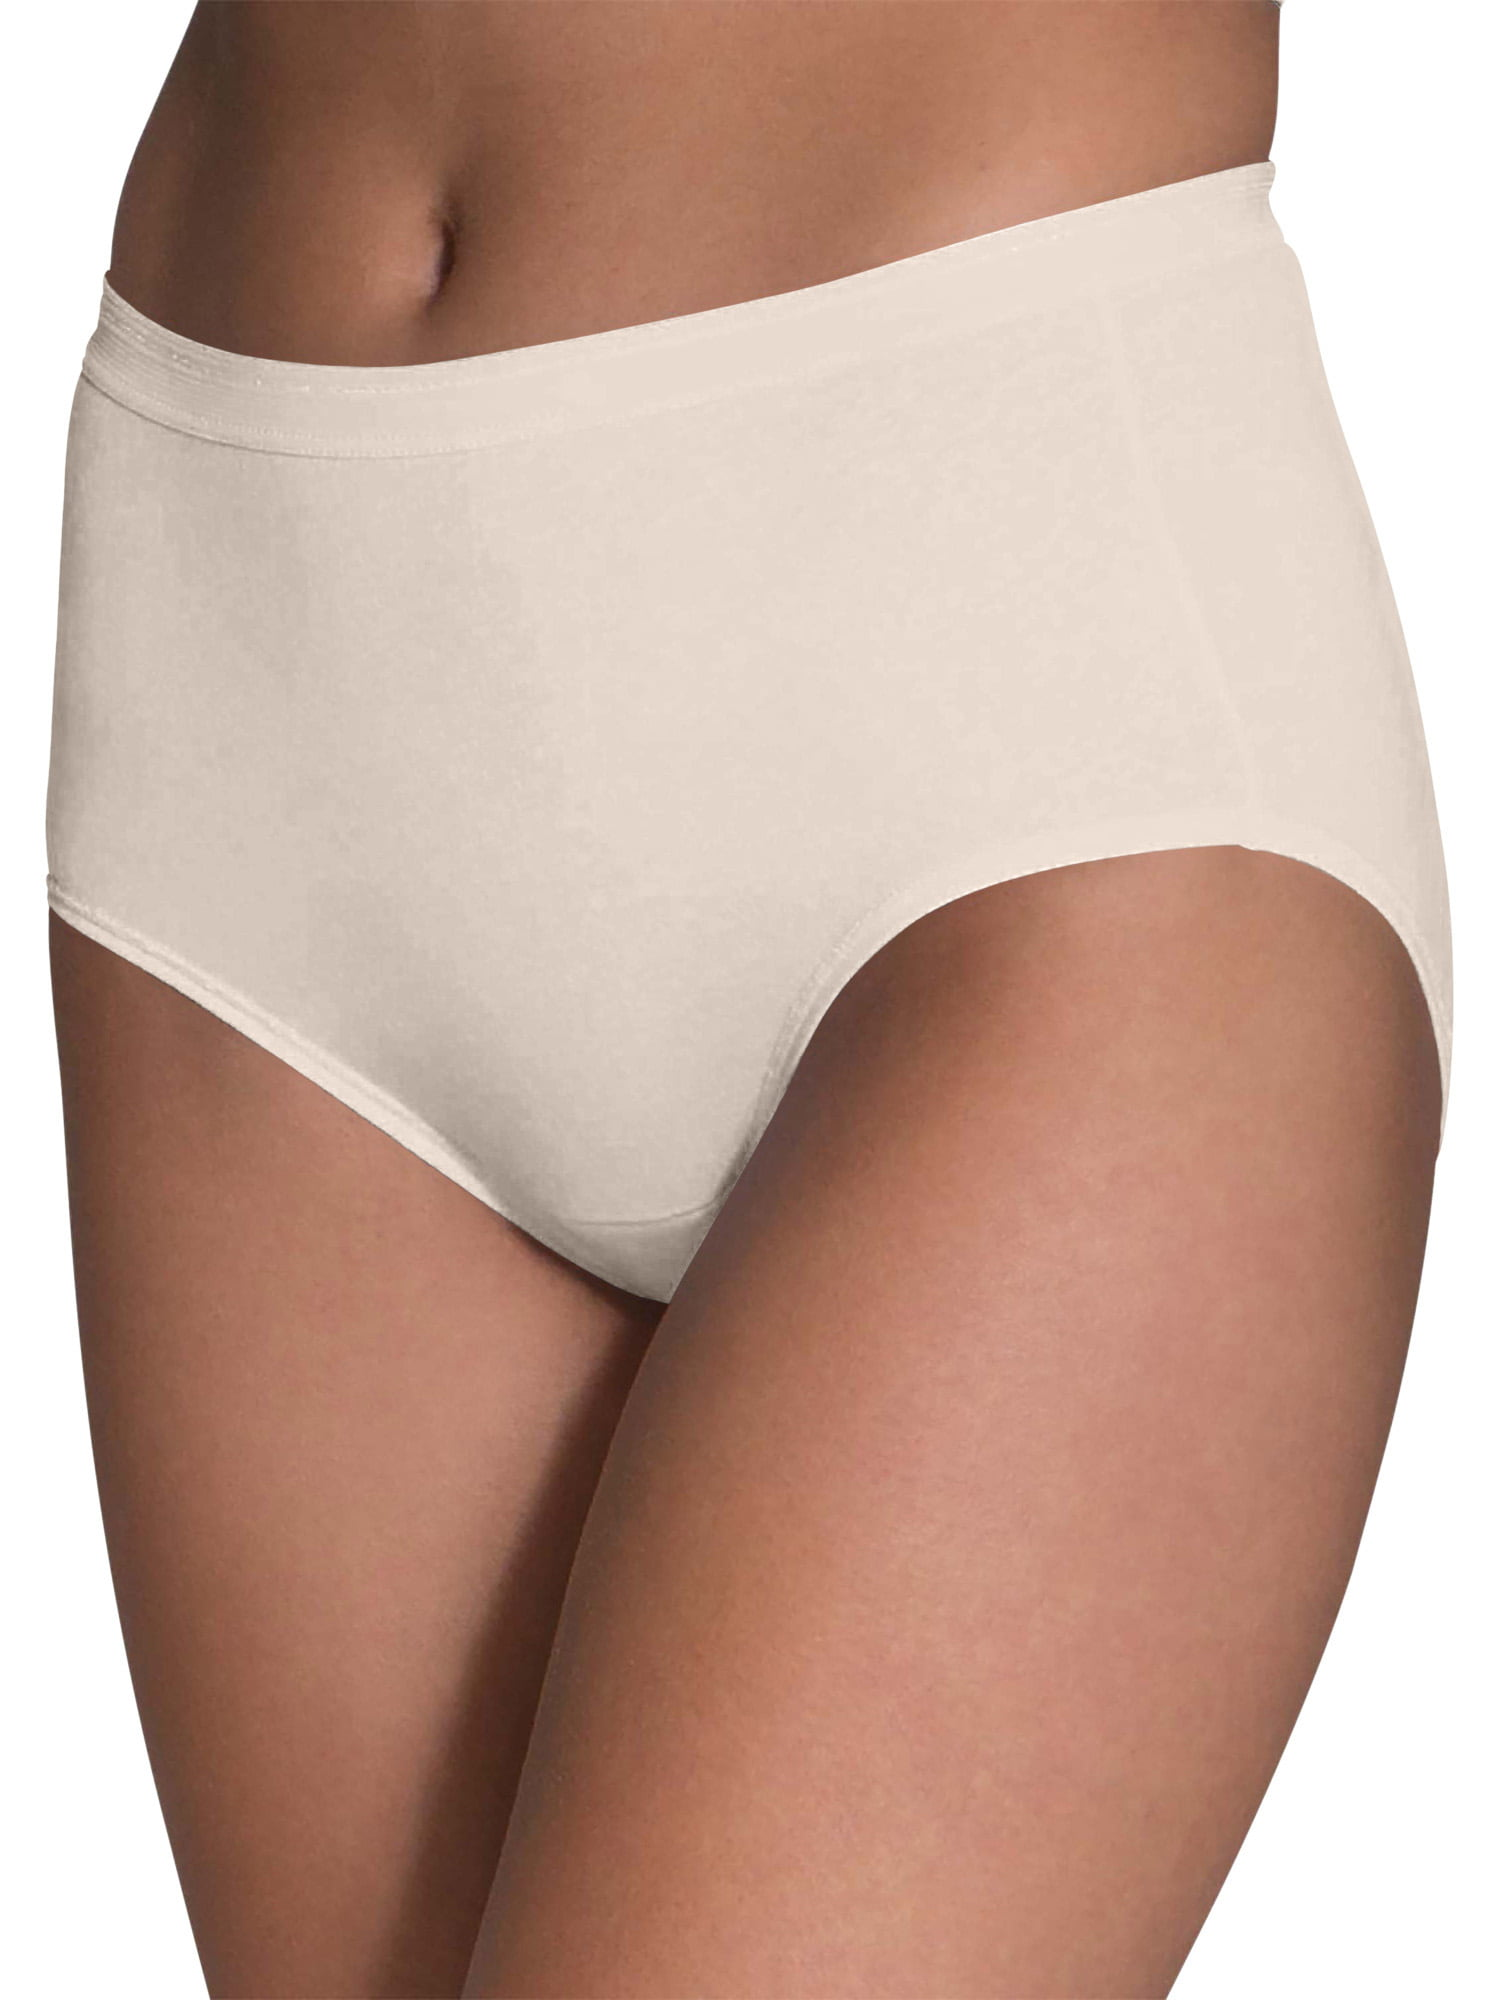 Fruit of the Loom Women's Cotton Brief Underwear, 10 Pack